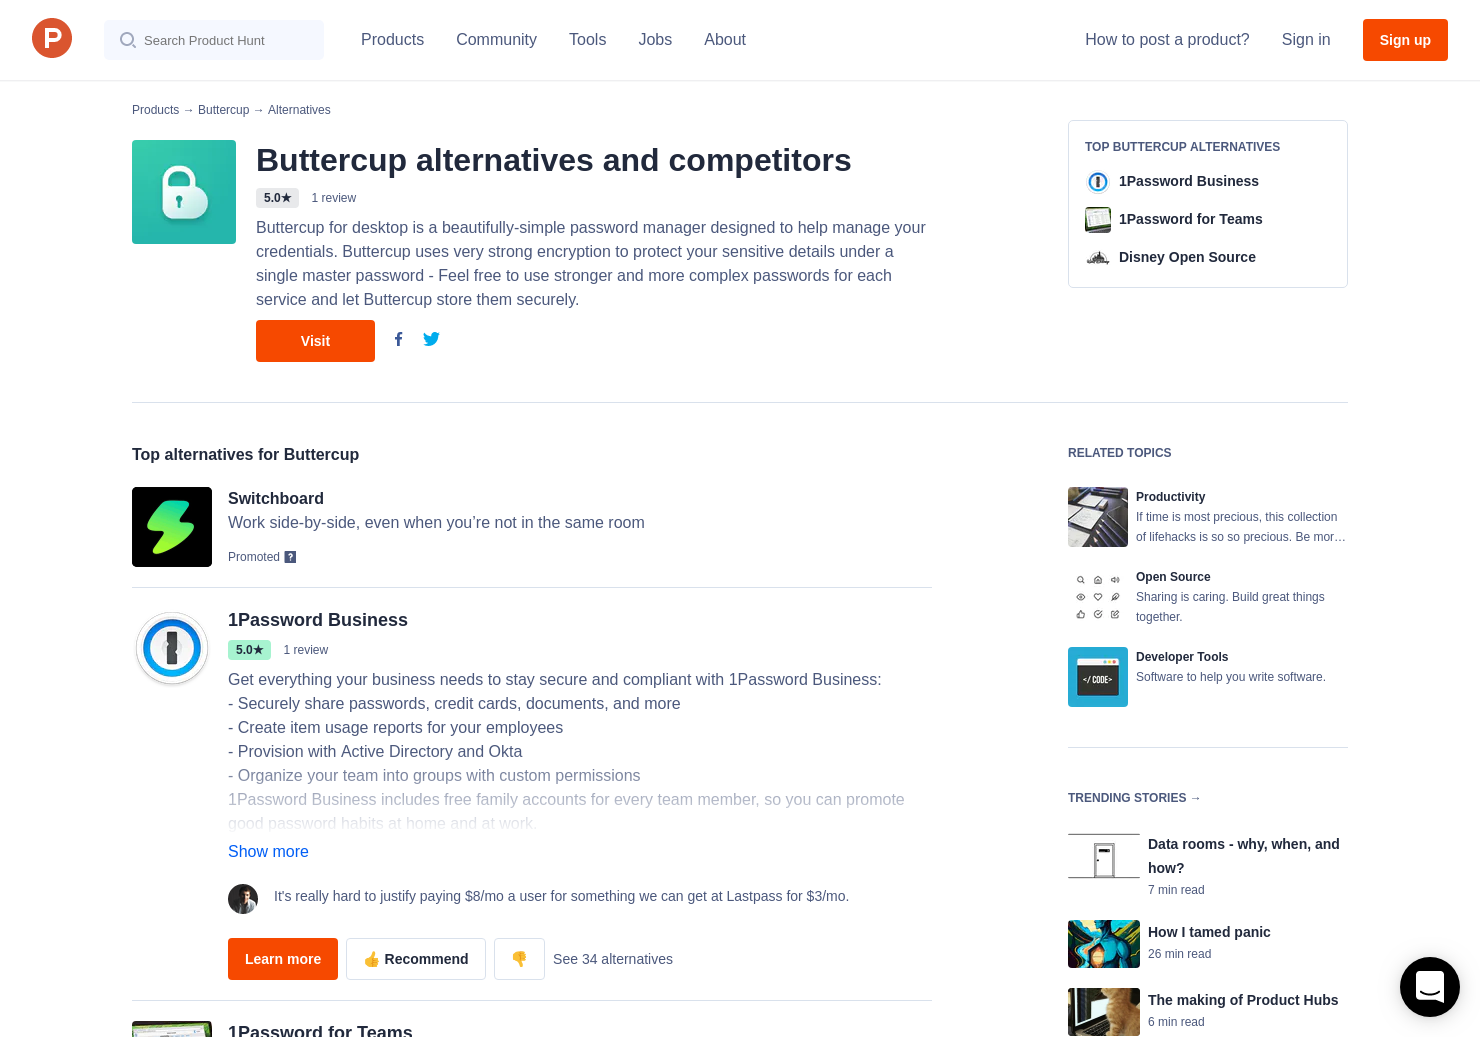 12 Alternatives to Buttercup | Product Hunt